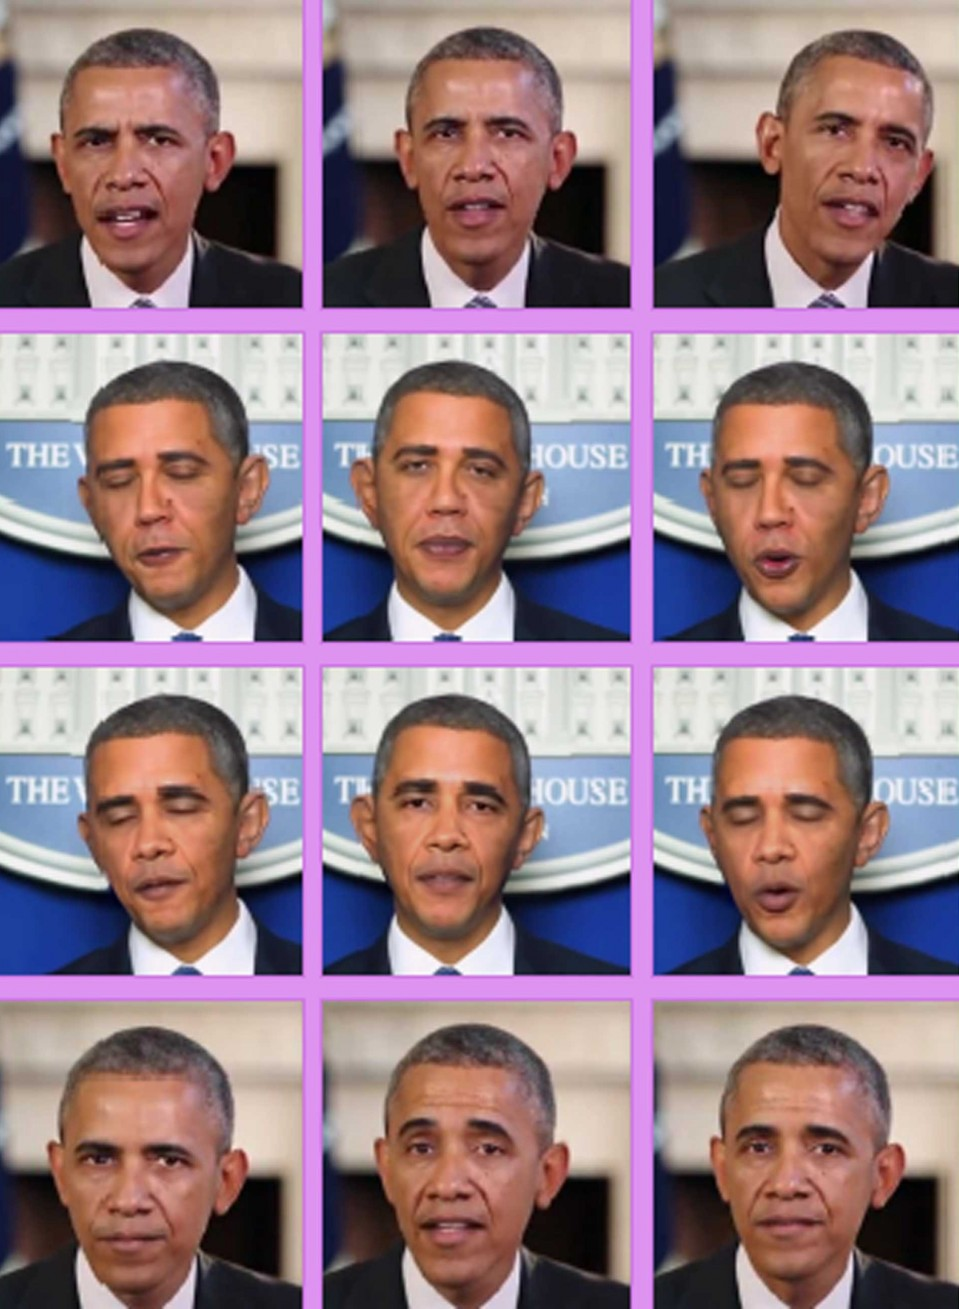 An image of deepfake and impersonating examples of Barak Obama